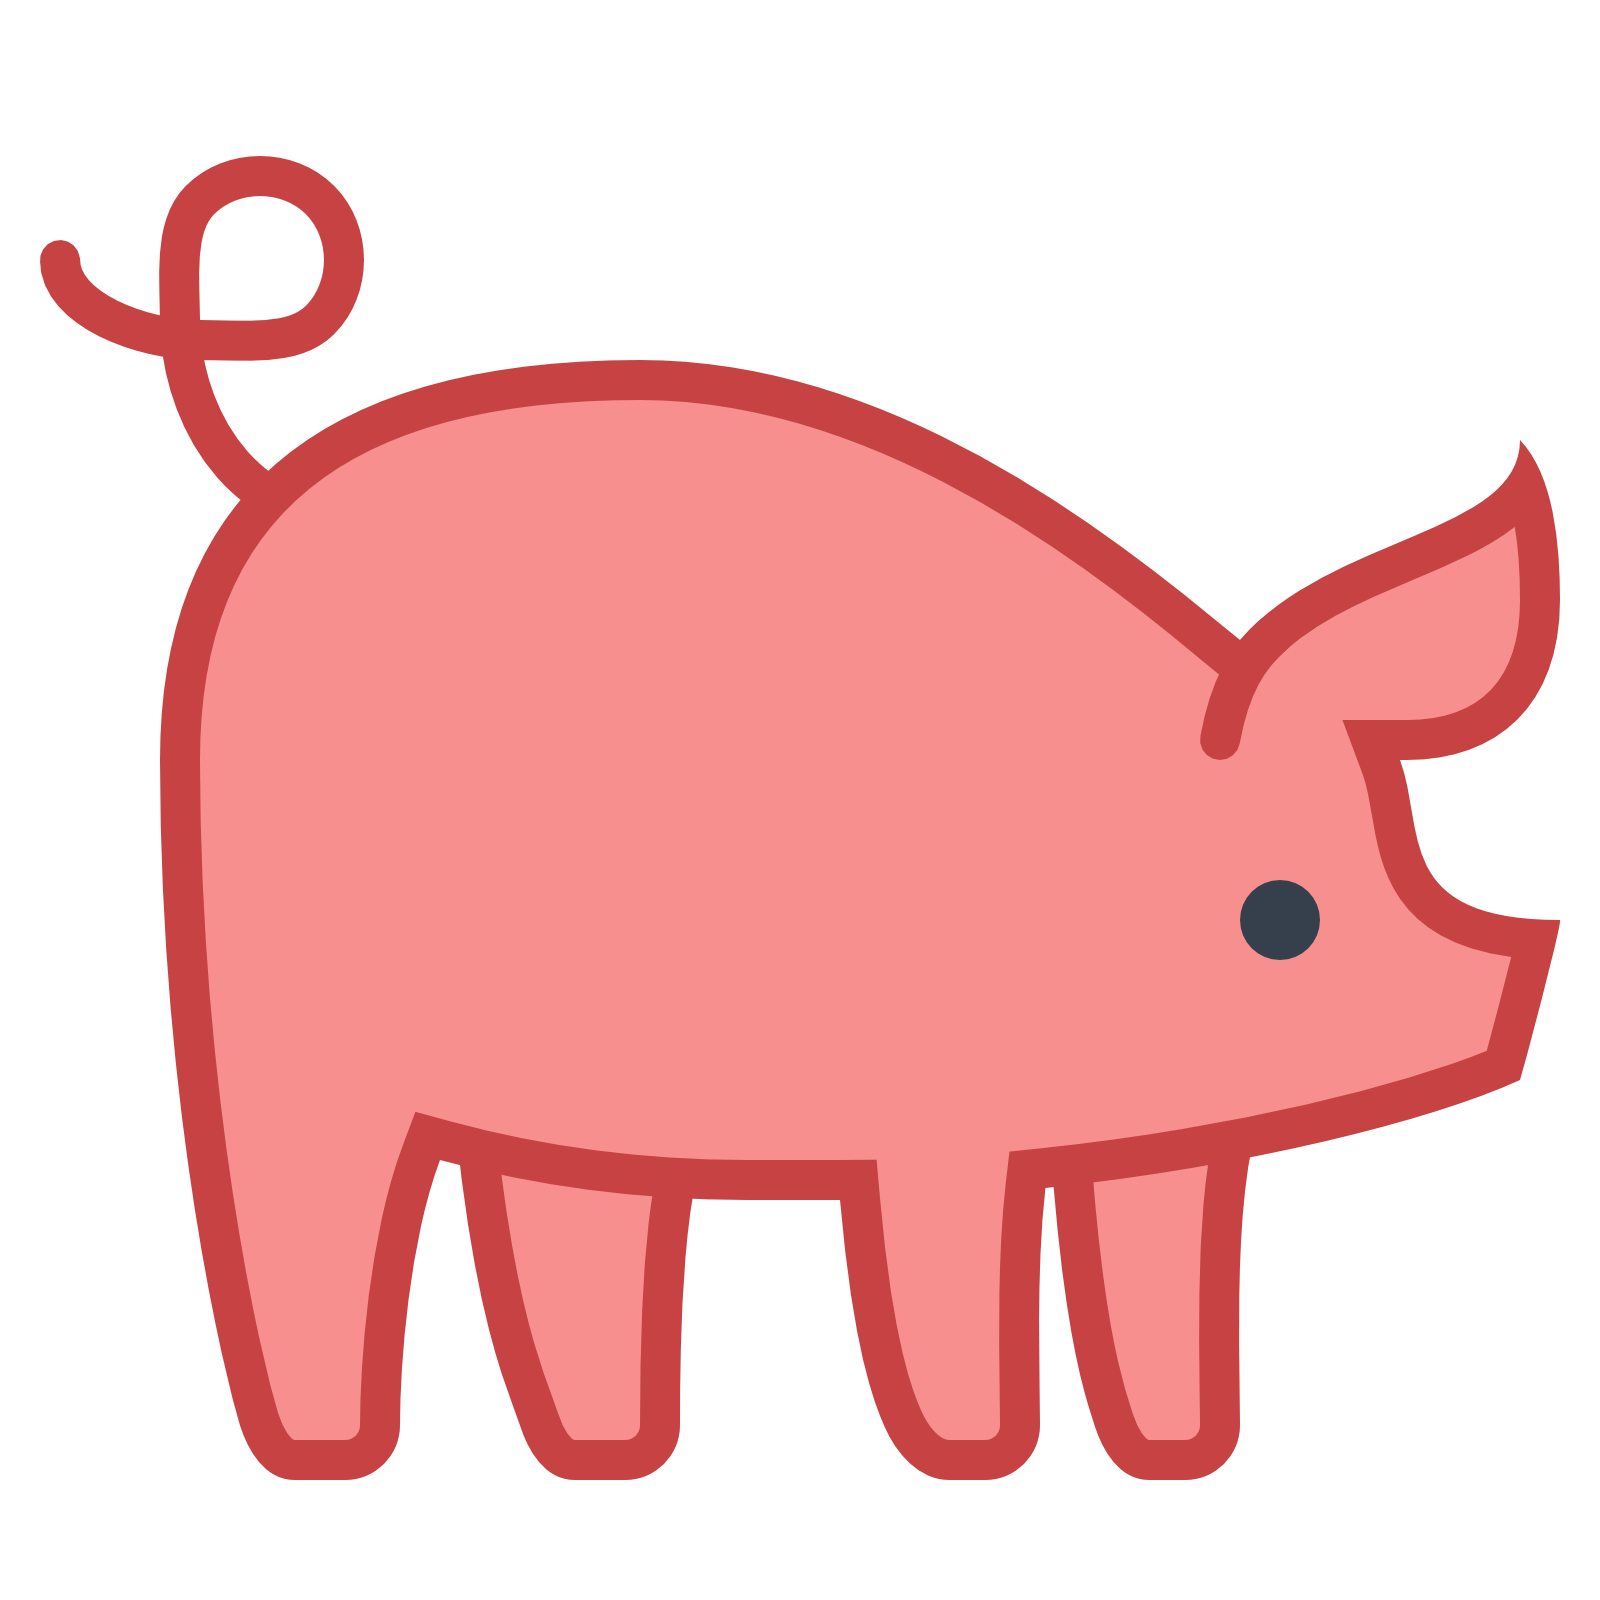 pig icon download icons #23508